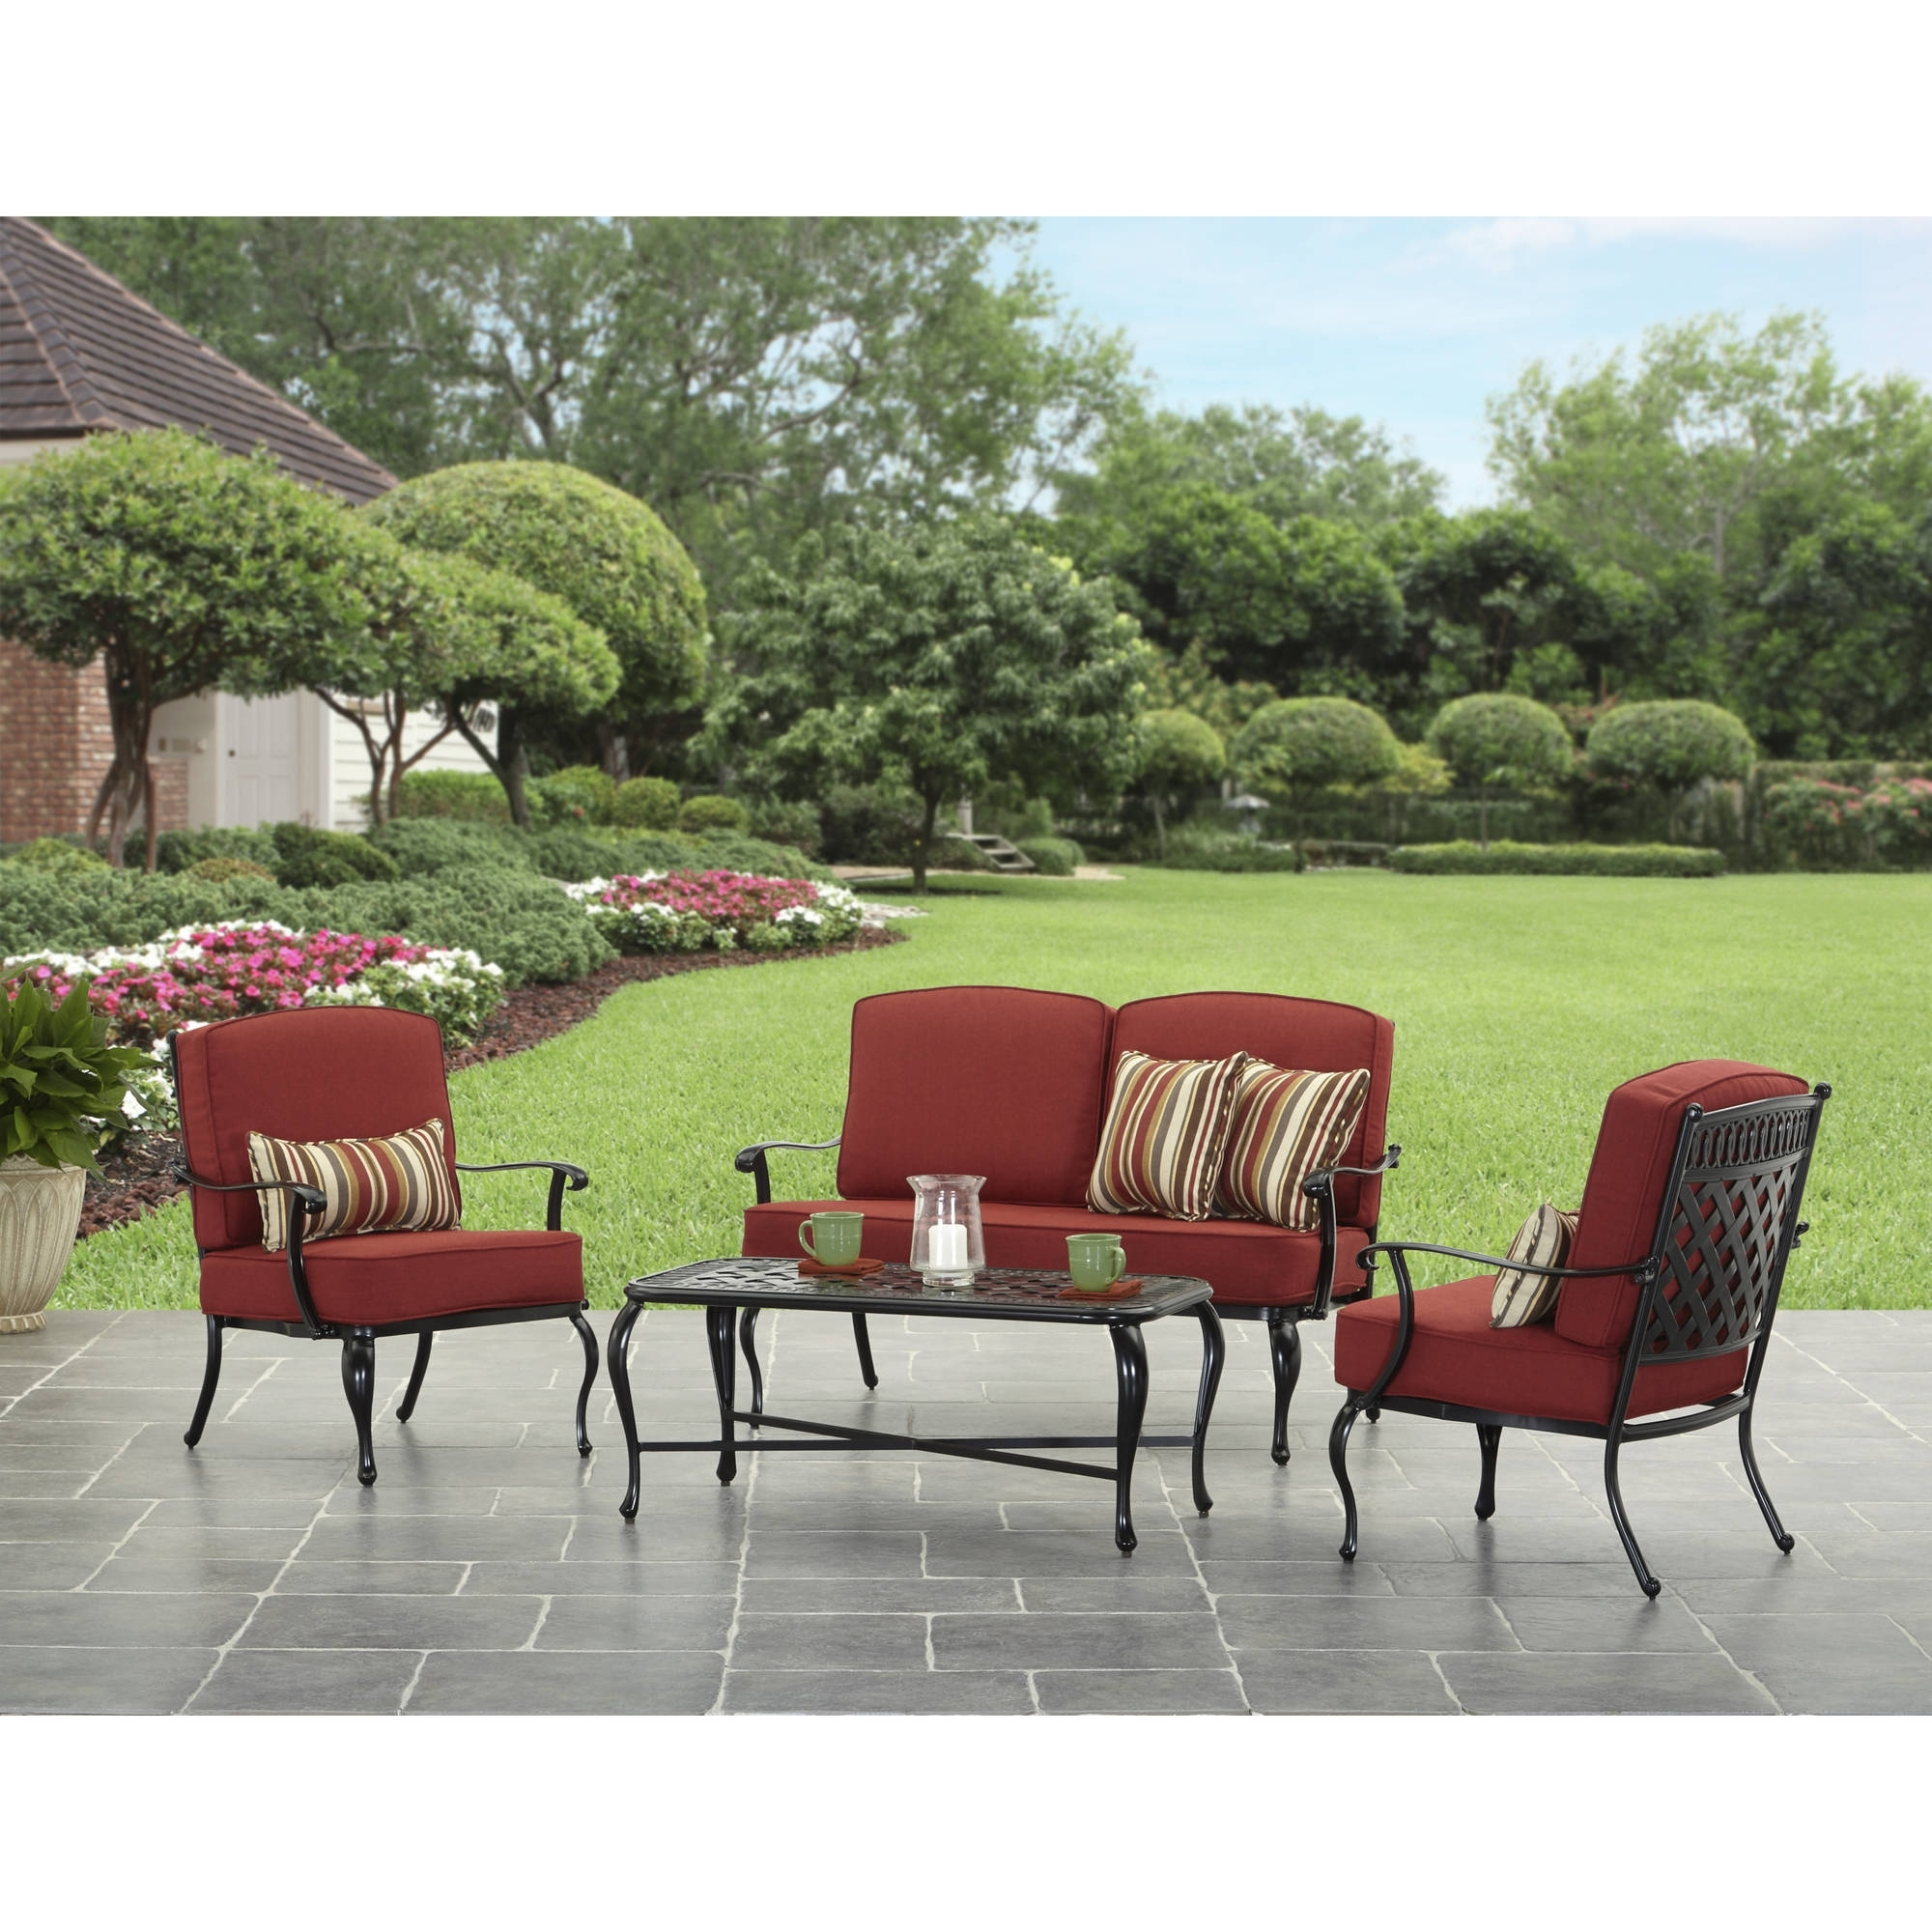 Best And Newest Dot Patio Conversation Sets Inside Better Homes And Garden Dawn Hill 4 Piece Outdoor Conversation Set (View 8 of 15)